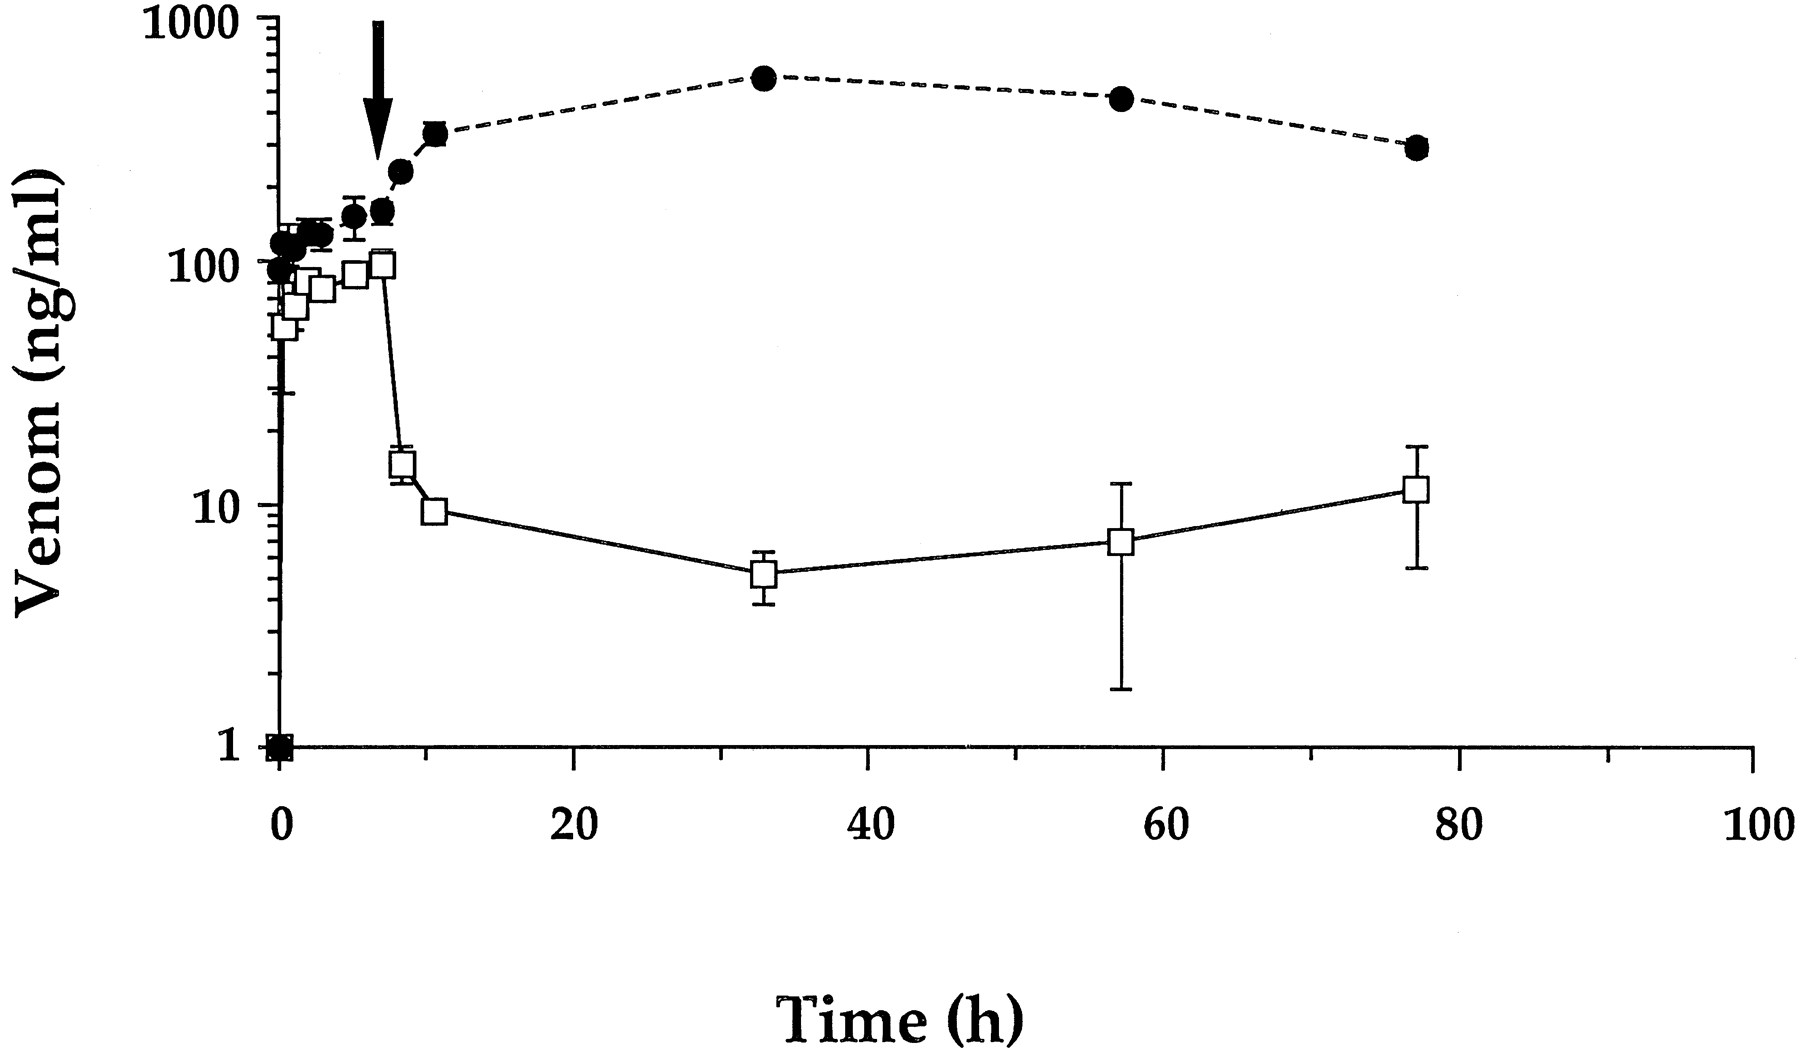 Effect Of Antivenom On Venom Pharmacokinetics In Experimentally 2 Animal Diagram Snake Labeled And Unlabeled One Download Figure